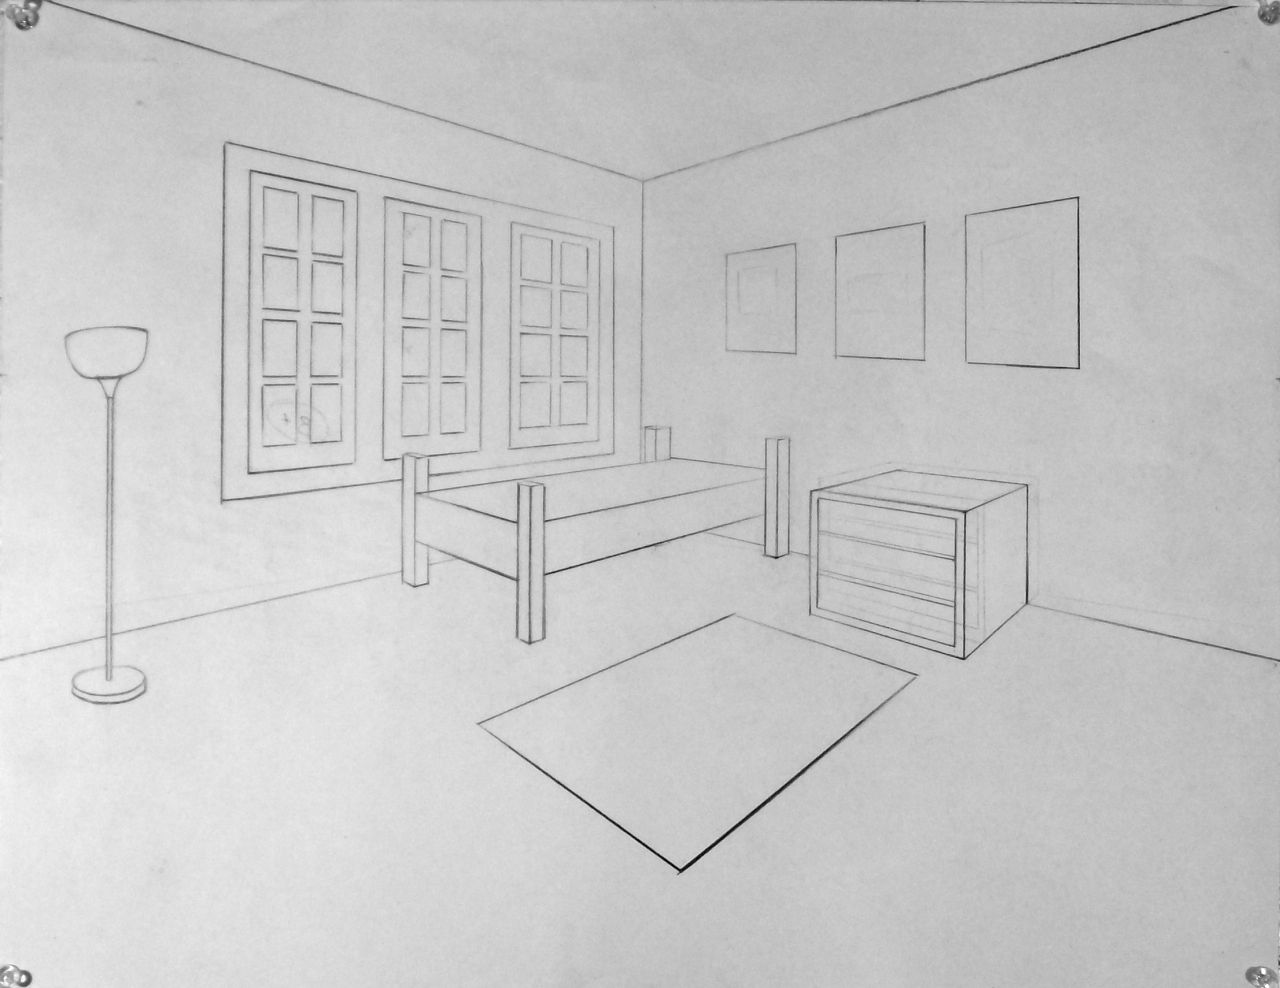 Living Room 2 Point Perspective drawing 2: two-point perspective interior examples | art elements